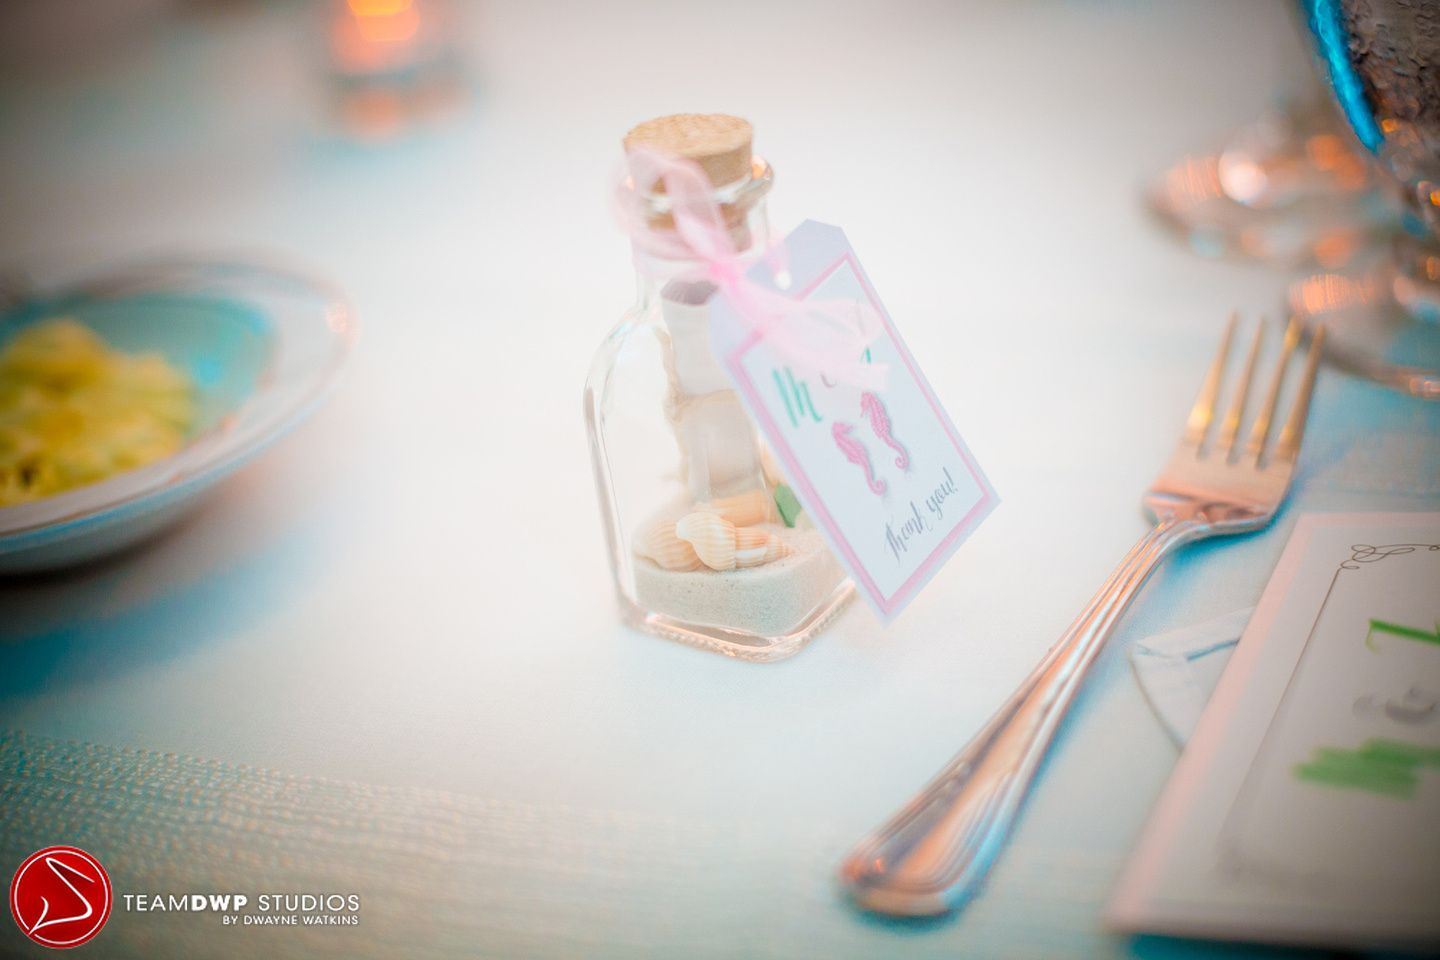 Beach themed wedding favors for the guests to remember the wedding ...